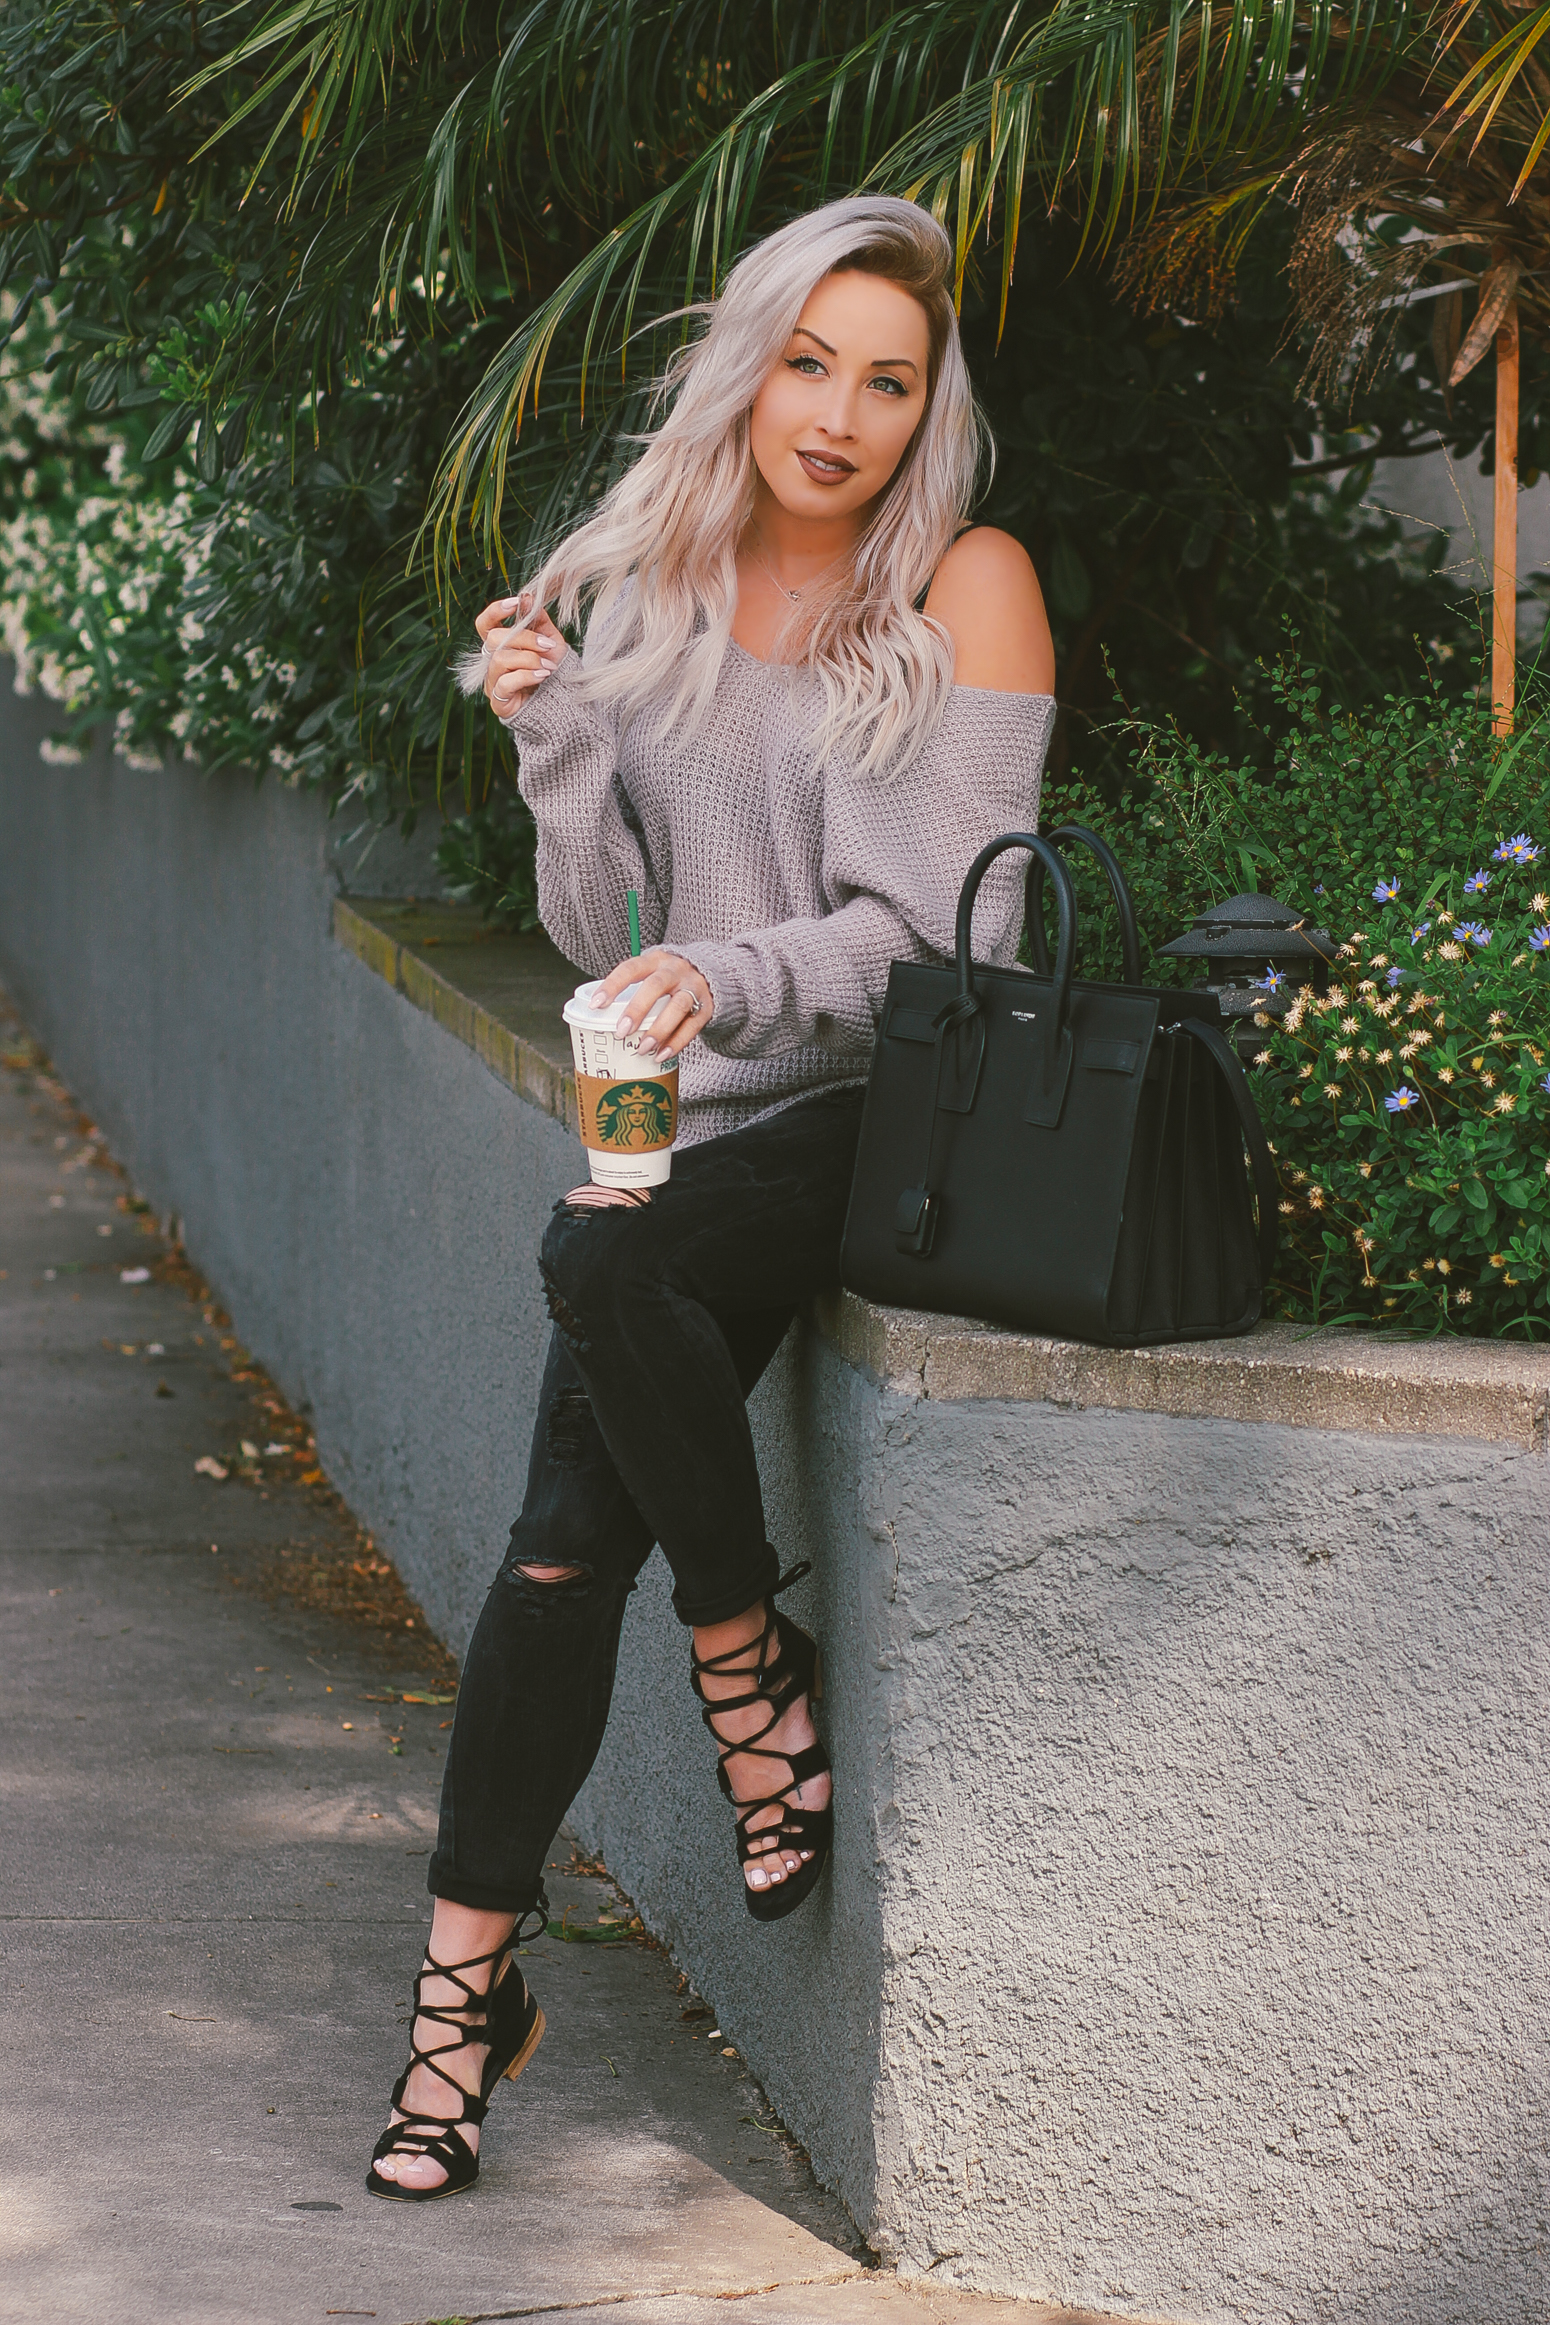 Blondie in the City | Slouchy Sweater | Black YSL Bag | Saint Laurent